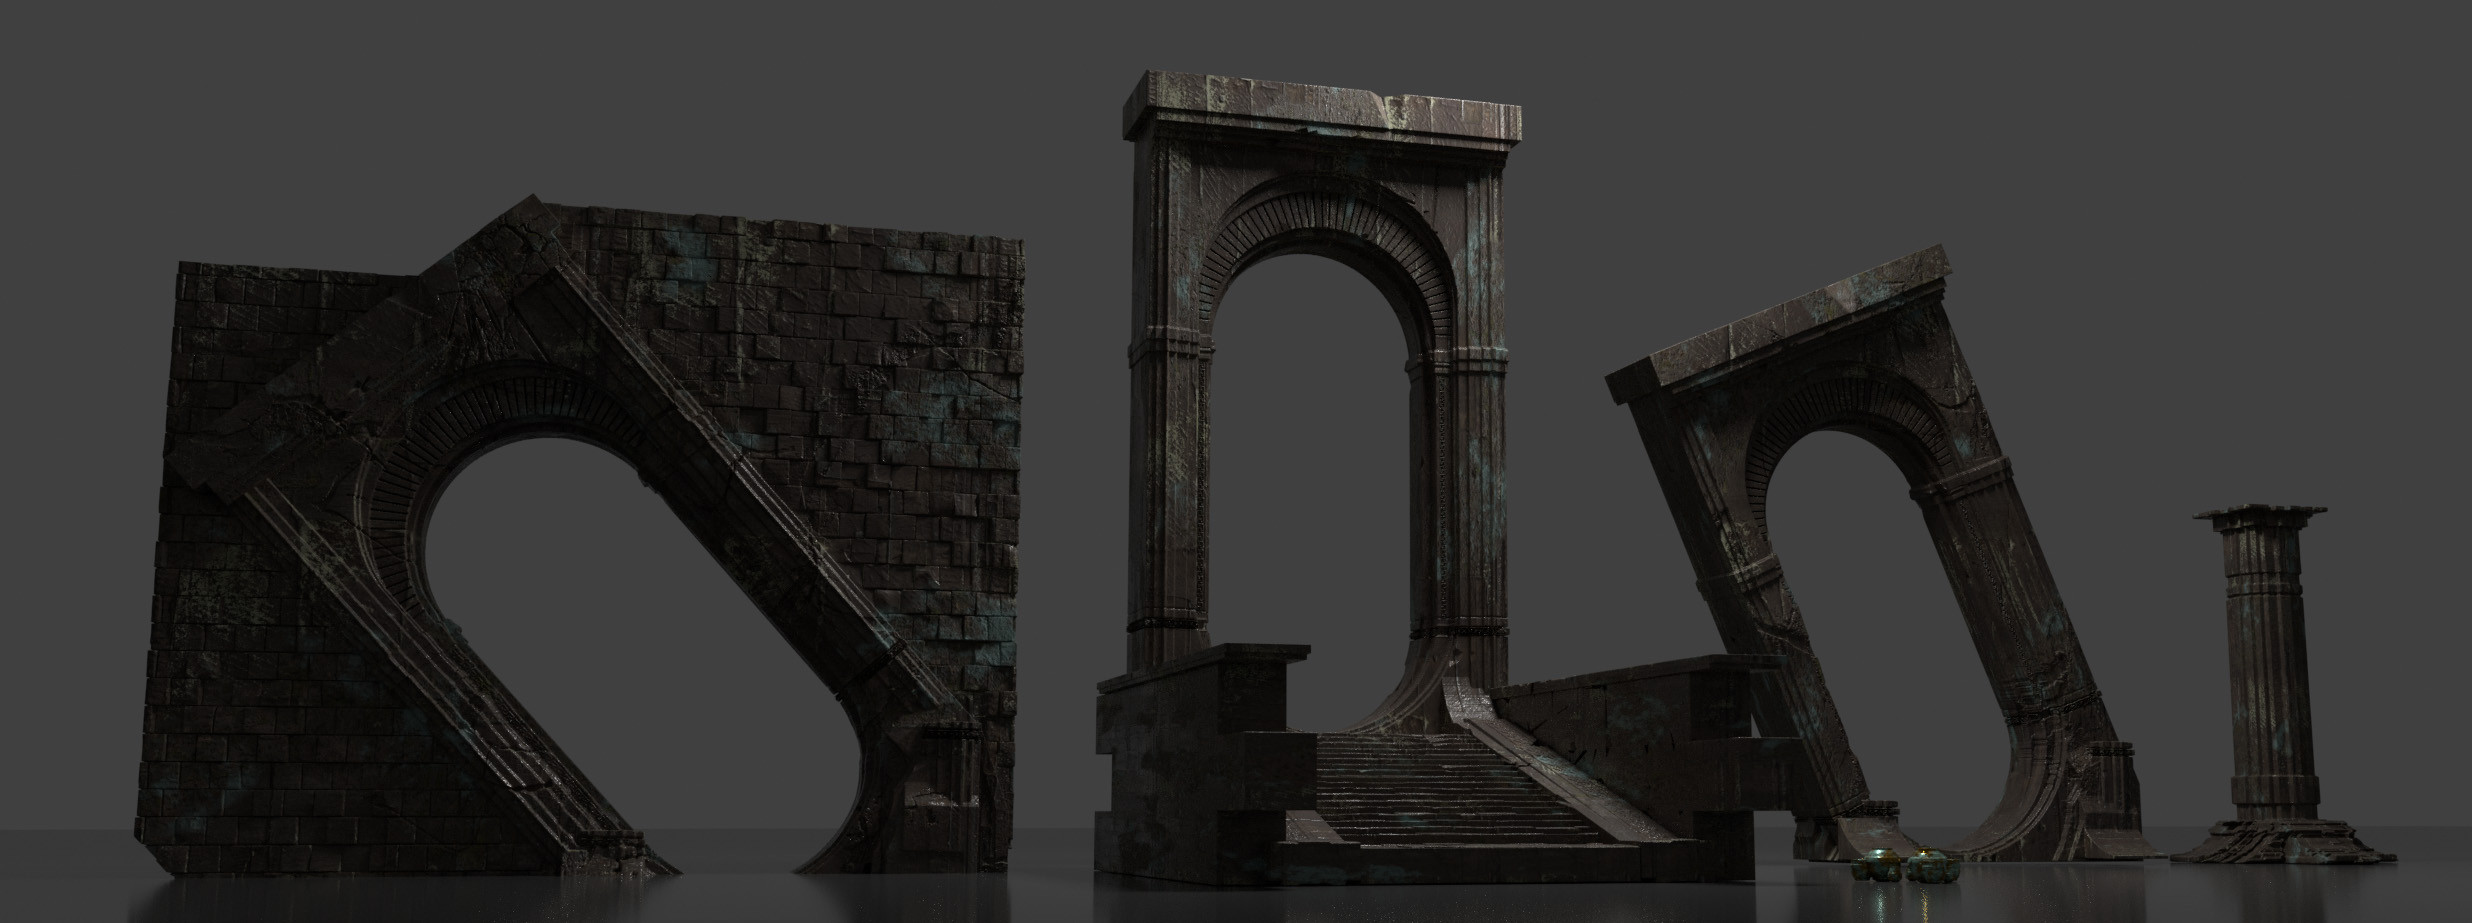 Assets created in 3dCoat